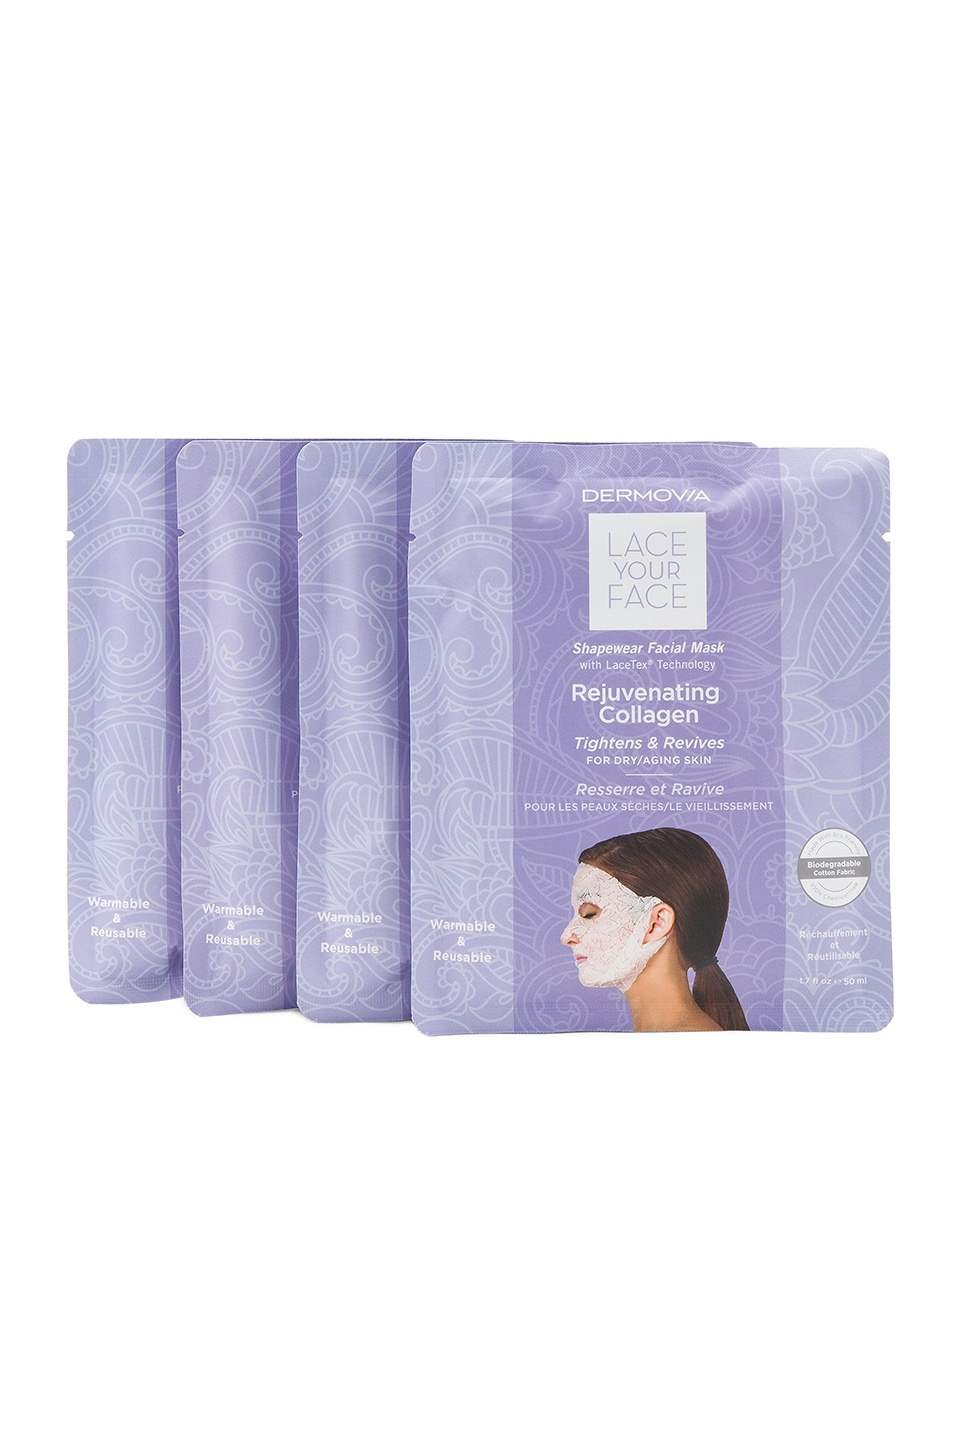 Dermovia Rejuvenating Collagen Lace Your Face Mask 4 Pack